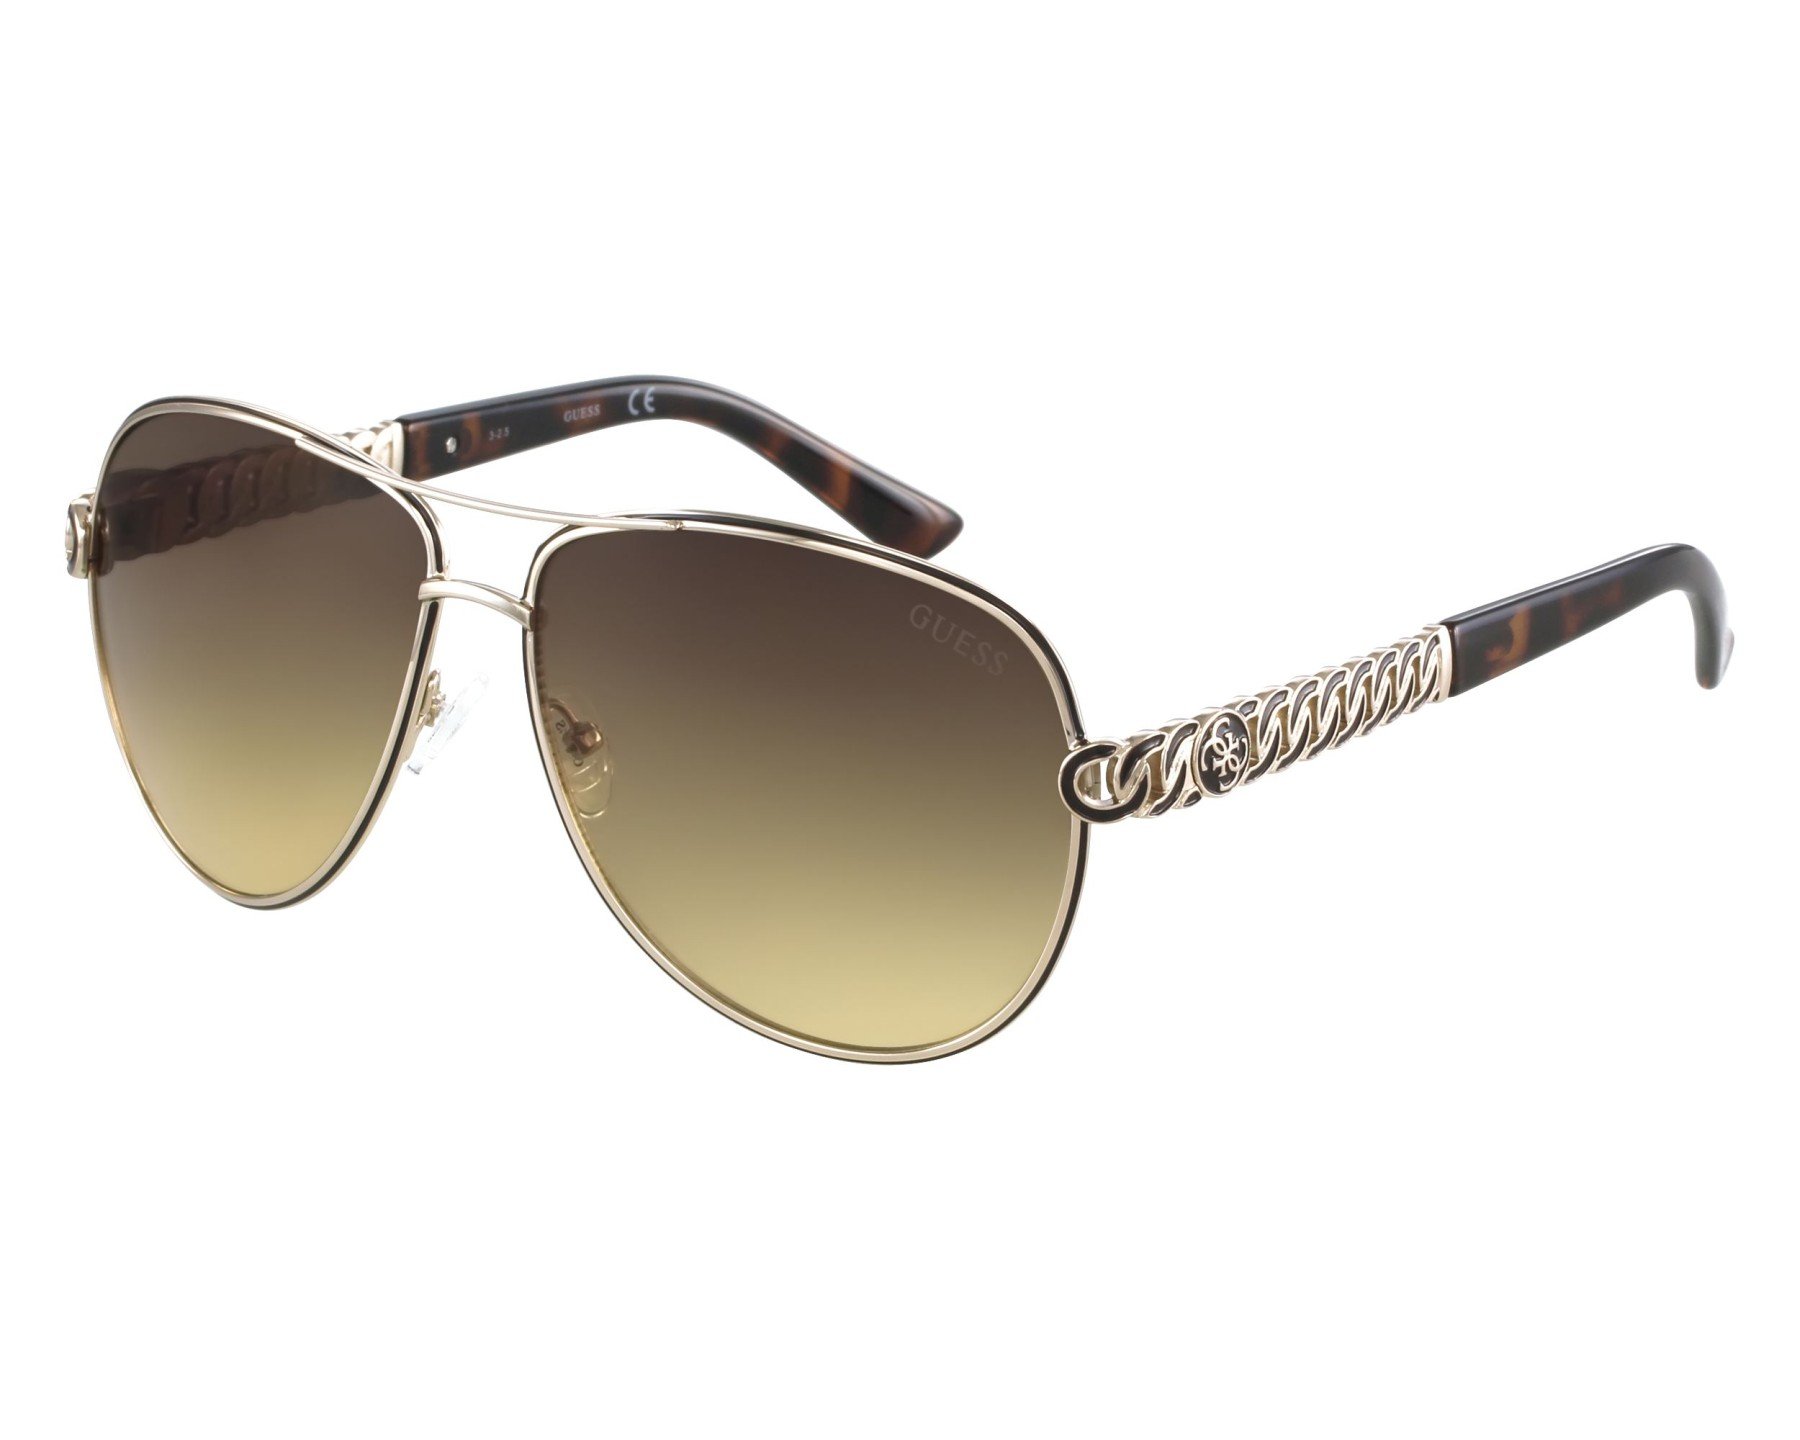 17df148eafd Sunglasses Guess GU-7404 32F 59-13 Gold front view